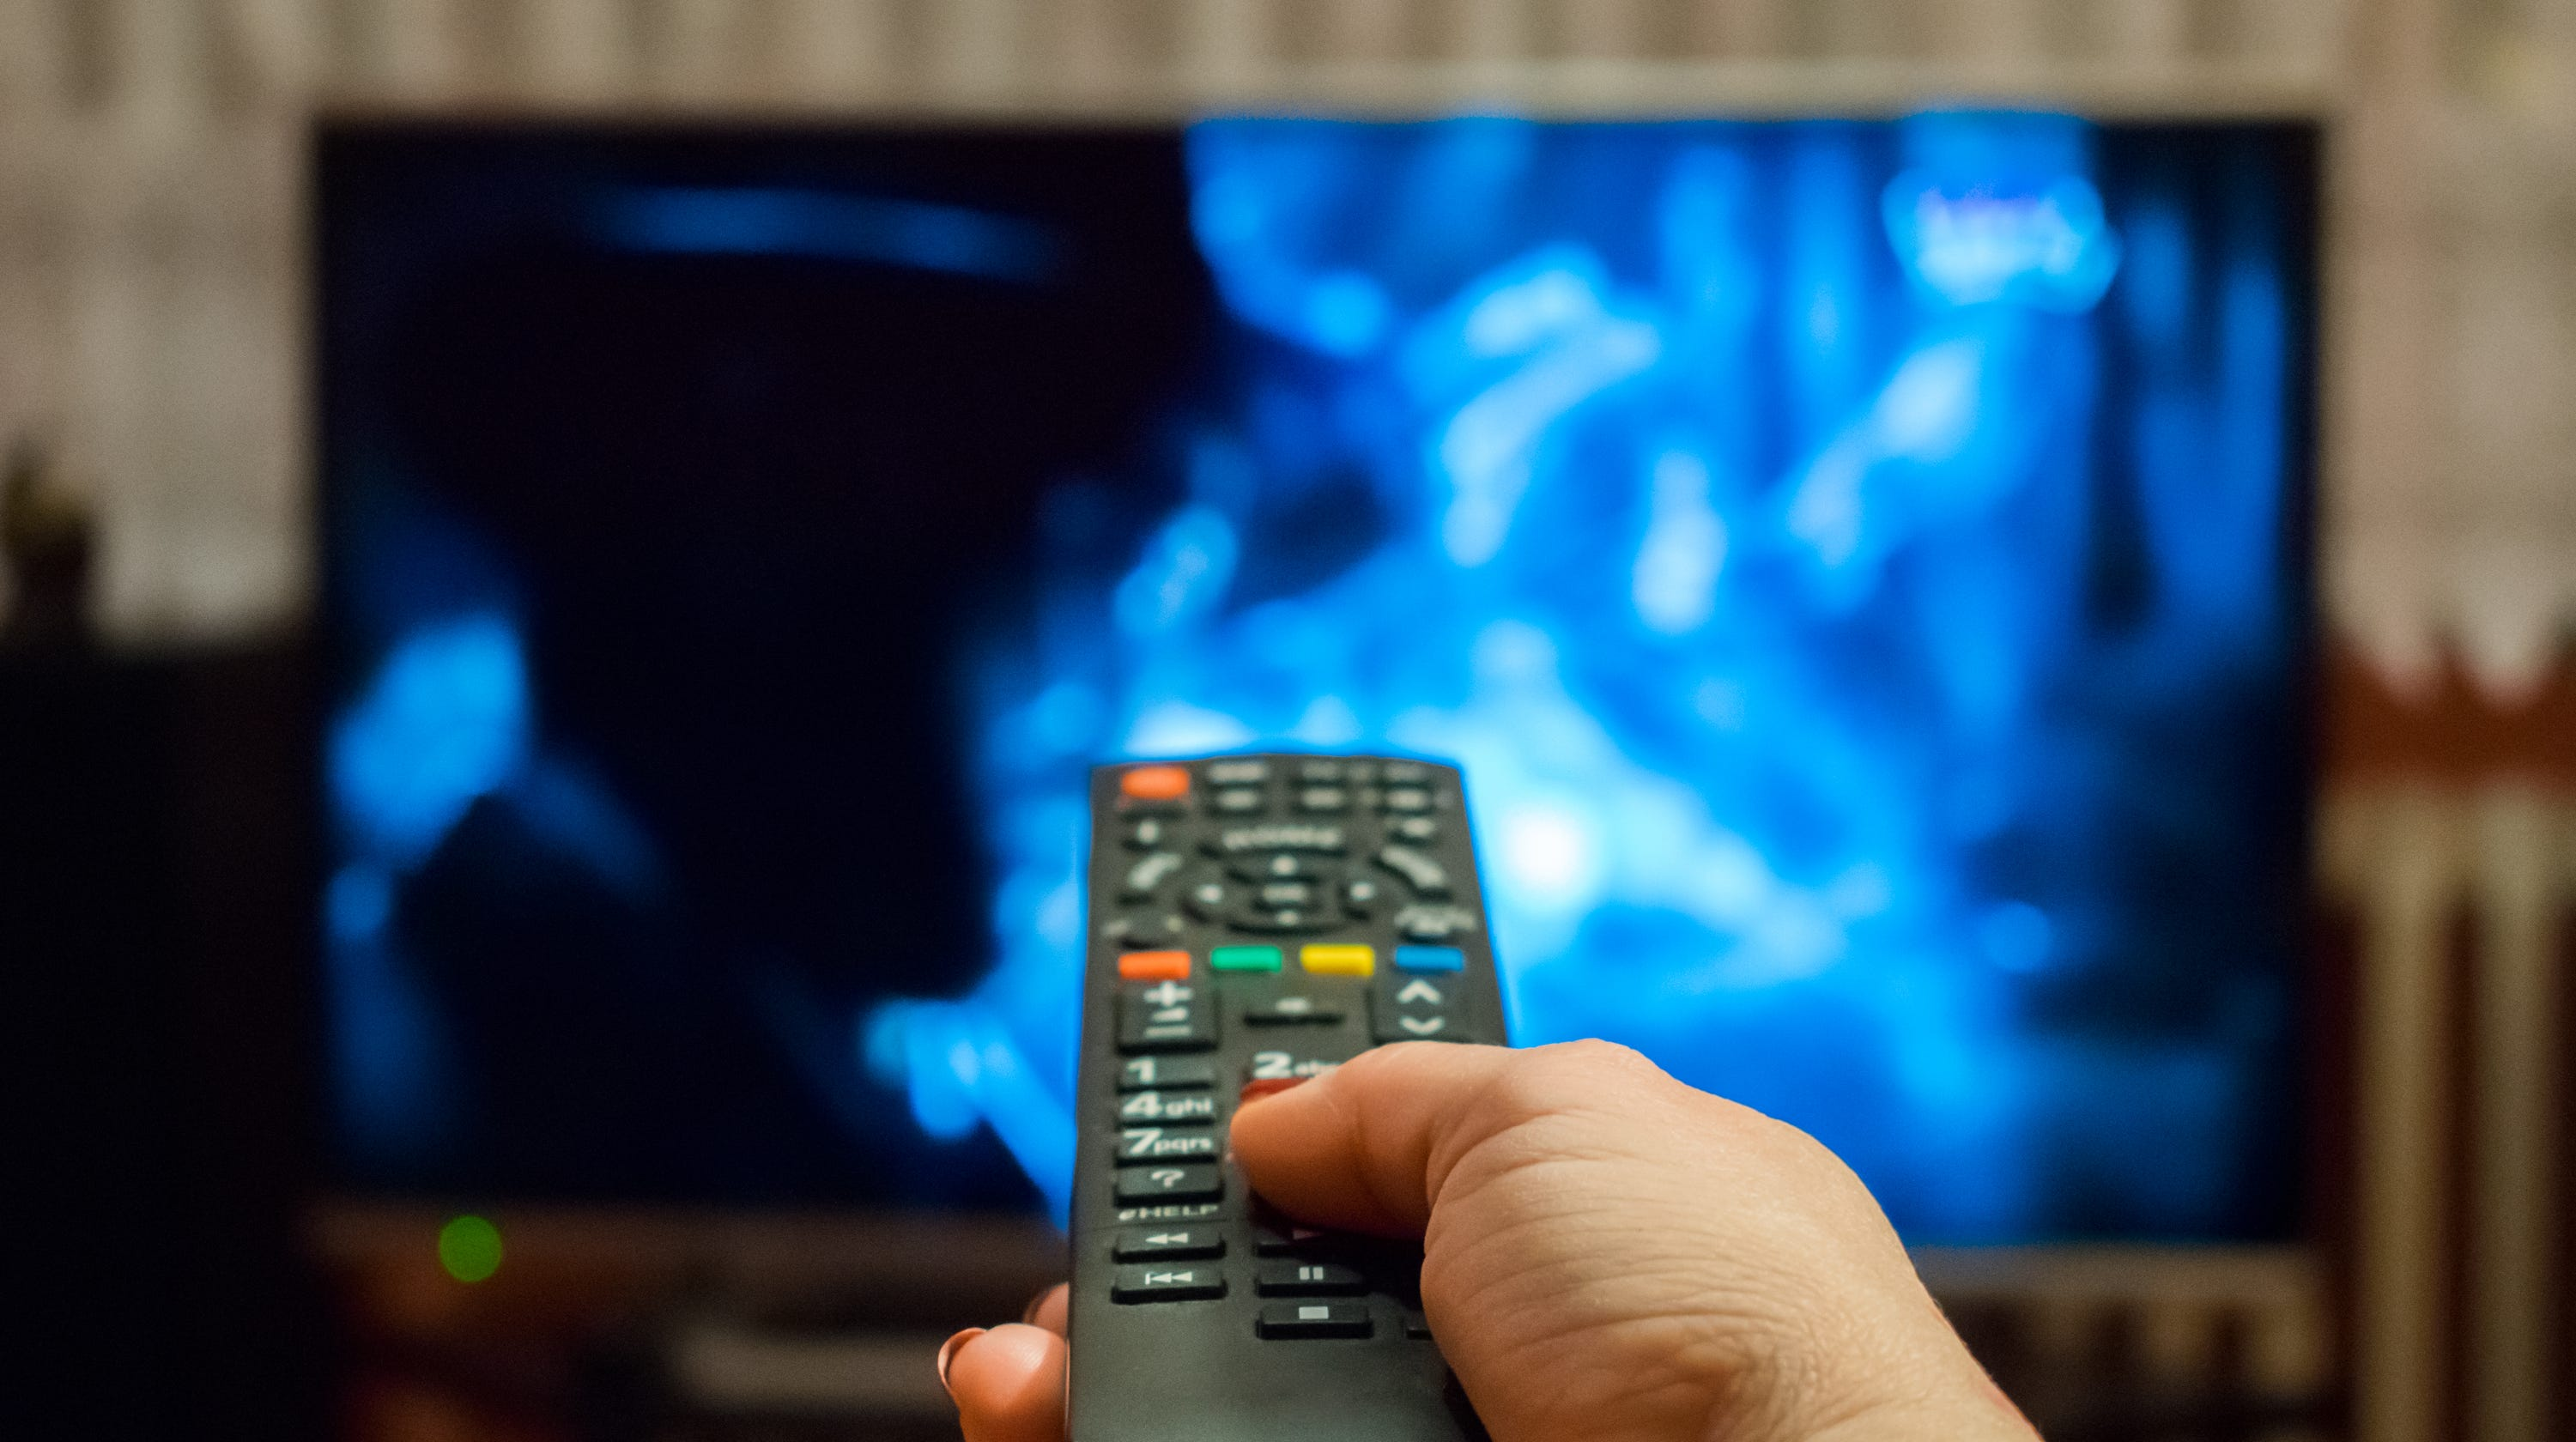 Don't miss local network channels: How to rescan your TV